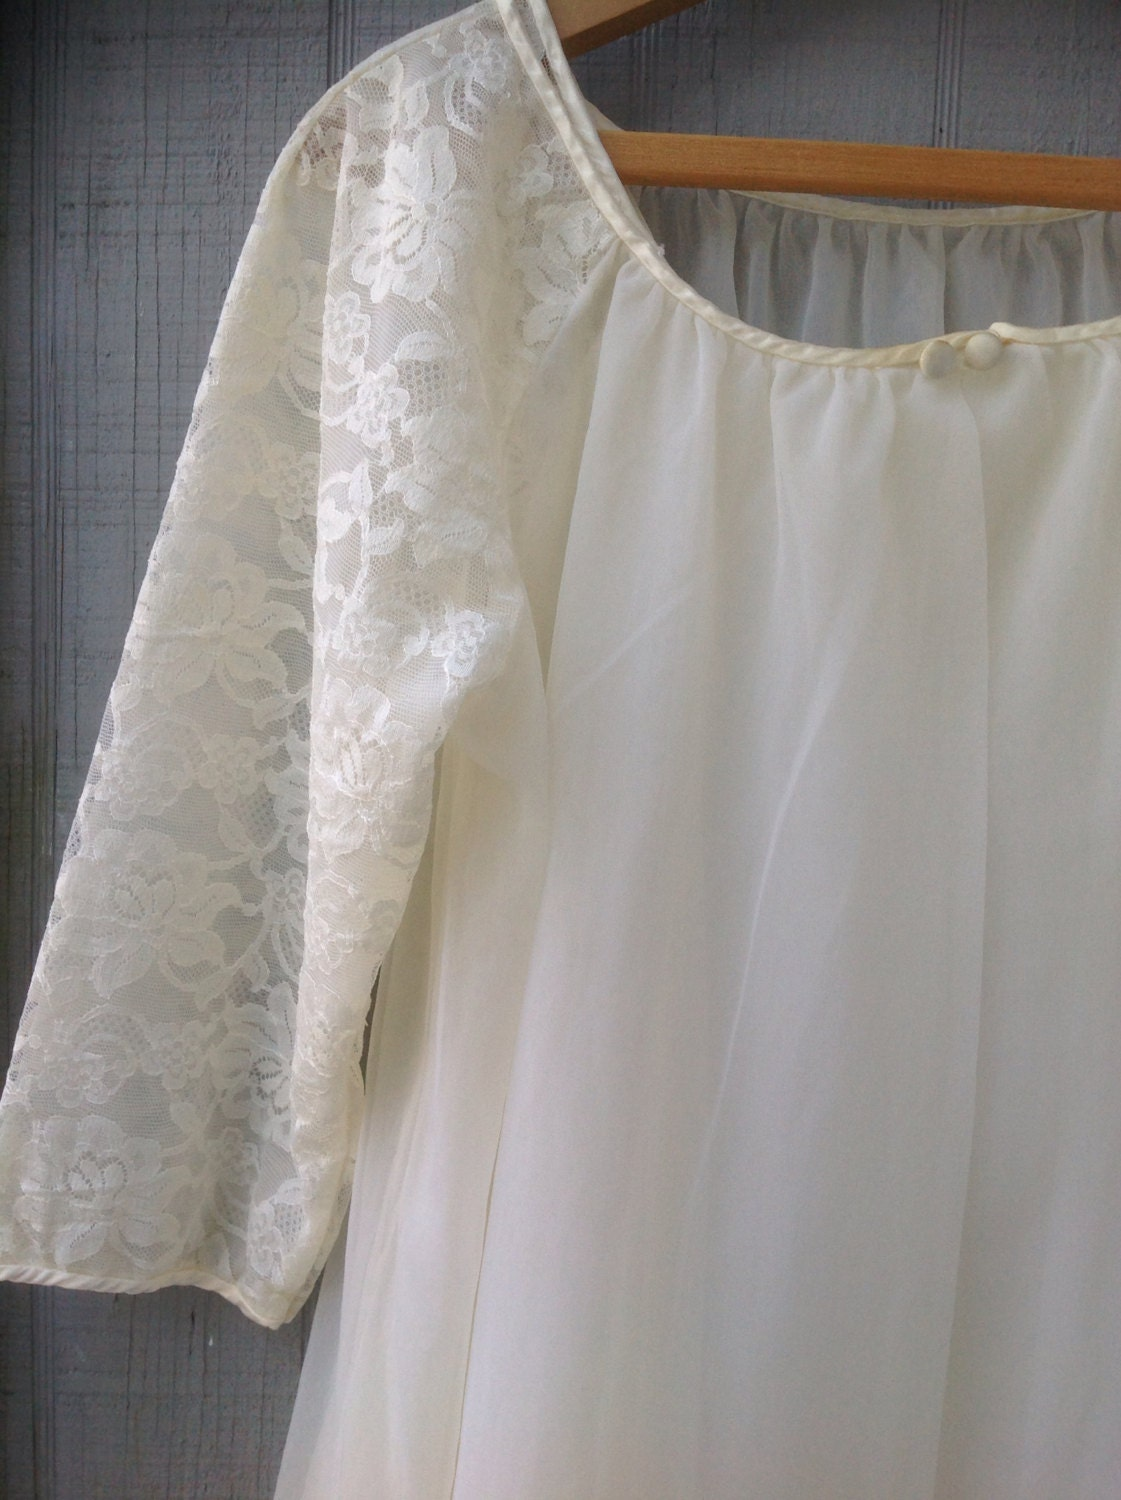 Free U.S. Shipping! Vintage Sears Ivory Nightgown and Robe Set - Bridal Peignoir - Negligee Set - Wedding - Babydoll - PackandAlleys